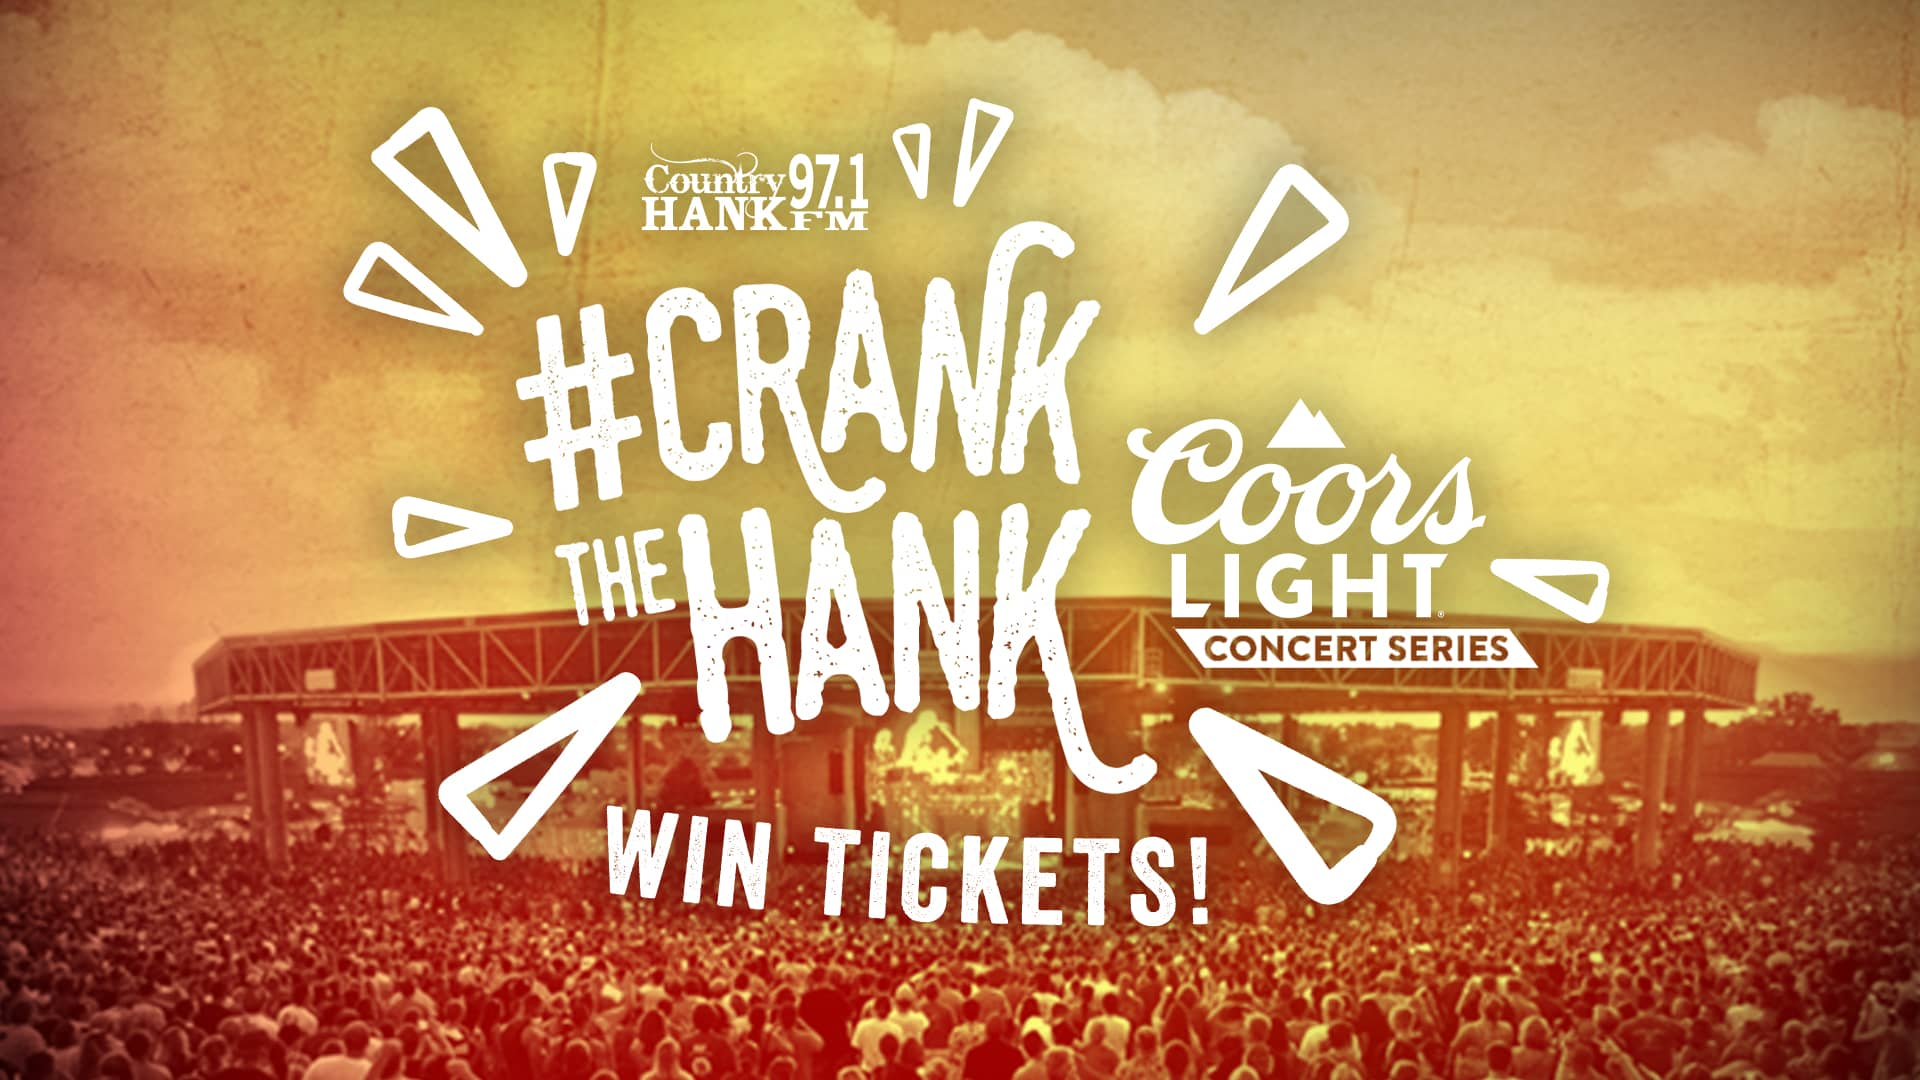 Win tickets to a concert a part of the coors light concert series, #crankthehank